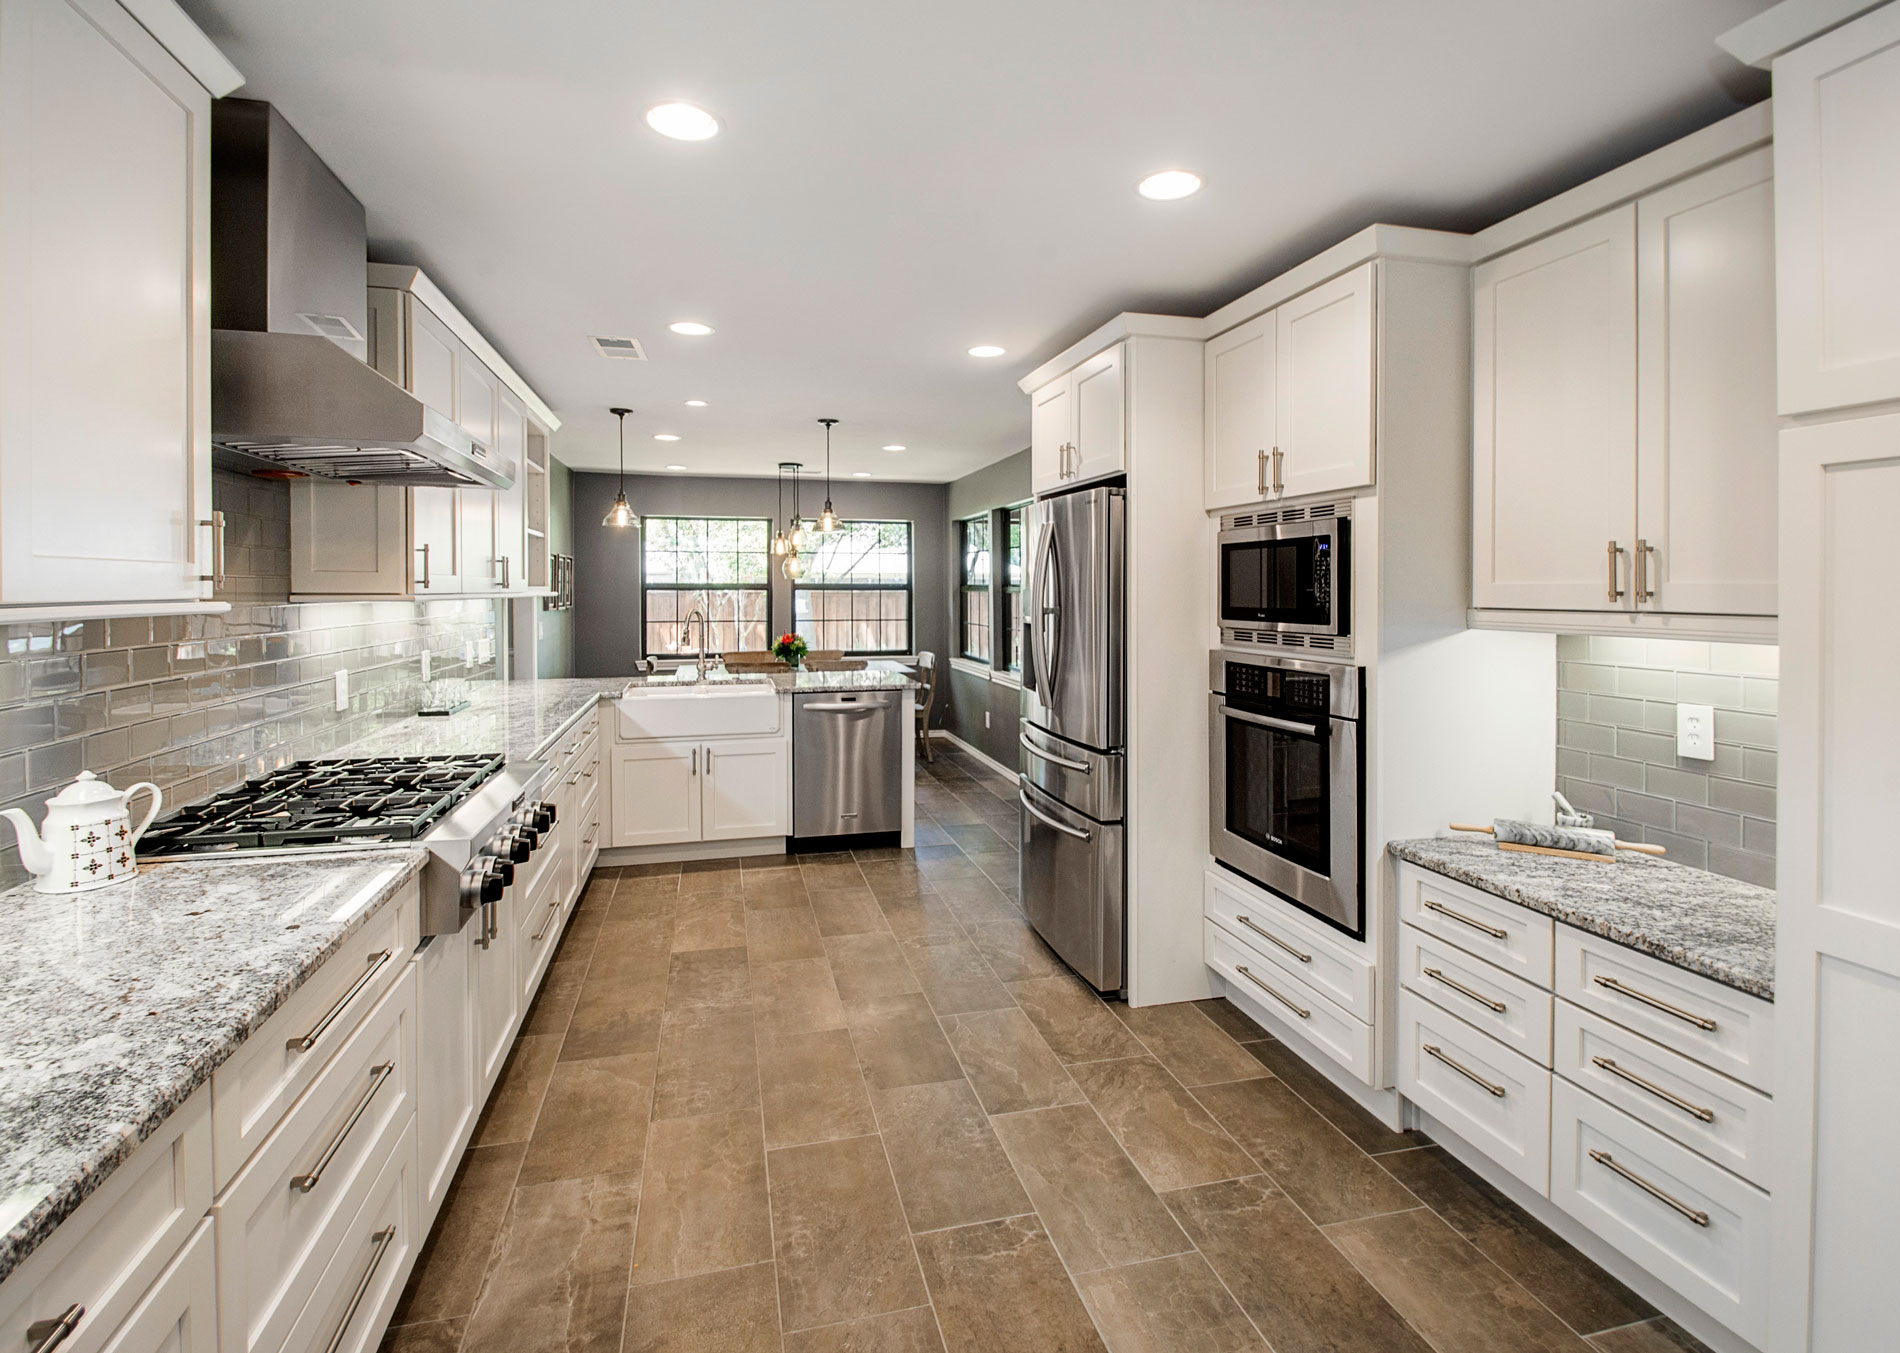 Beautiful Kitchen Remodel in Dallas Area